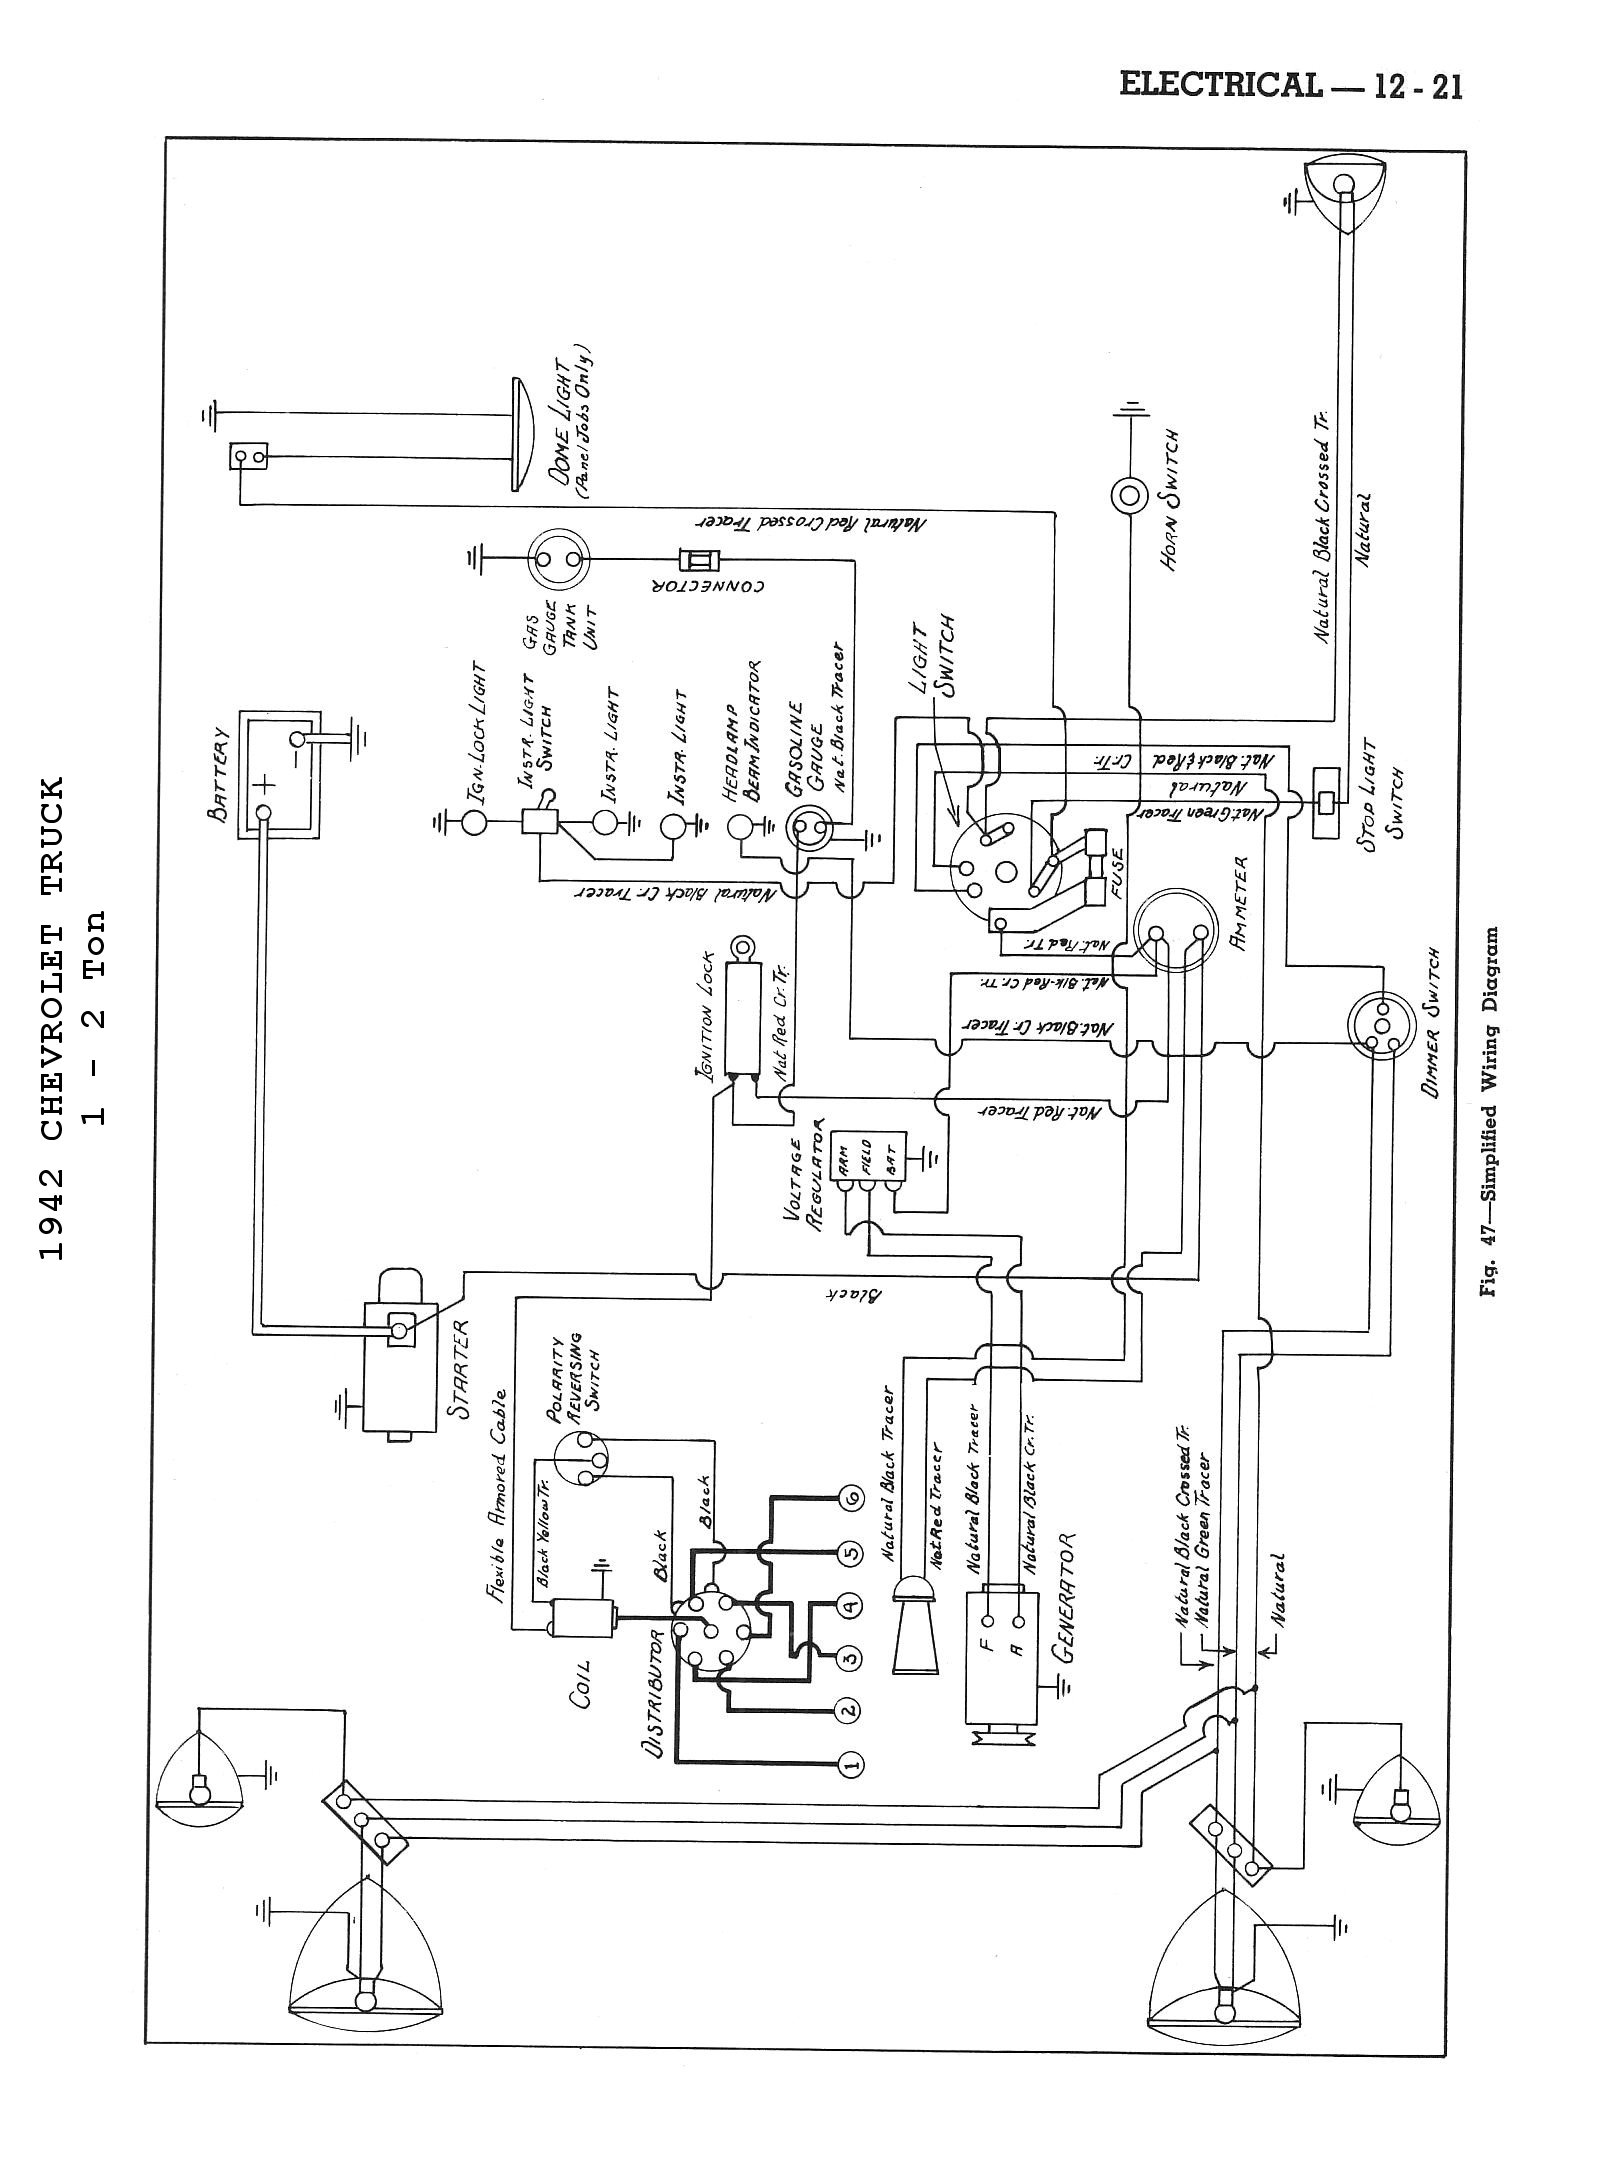 1941 Plymouth Wiring Diagram on 1950 desoto for sale